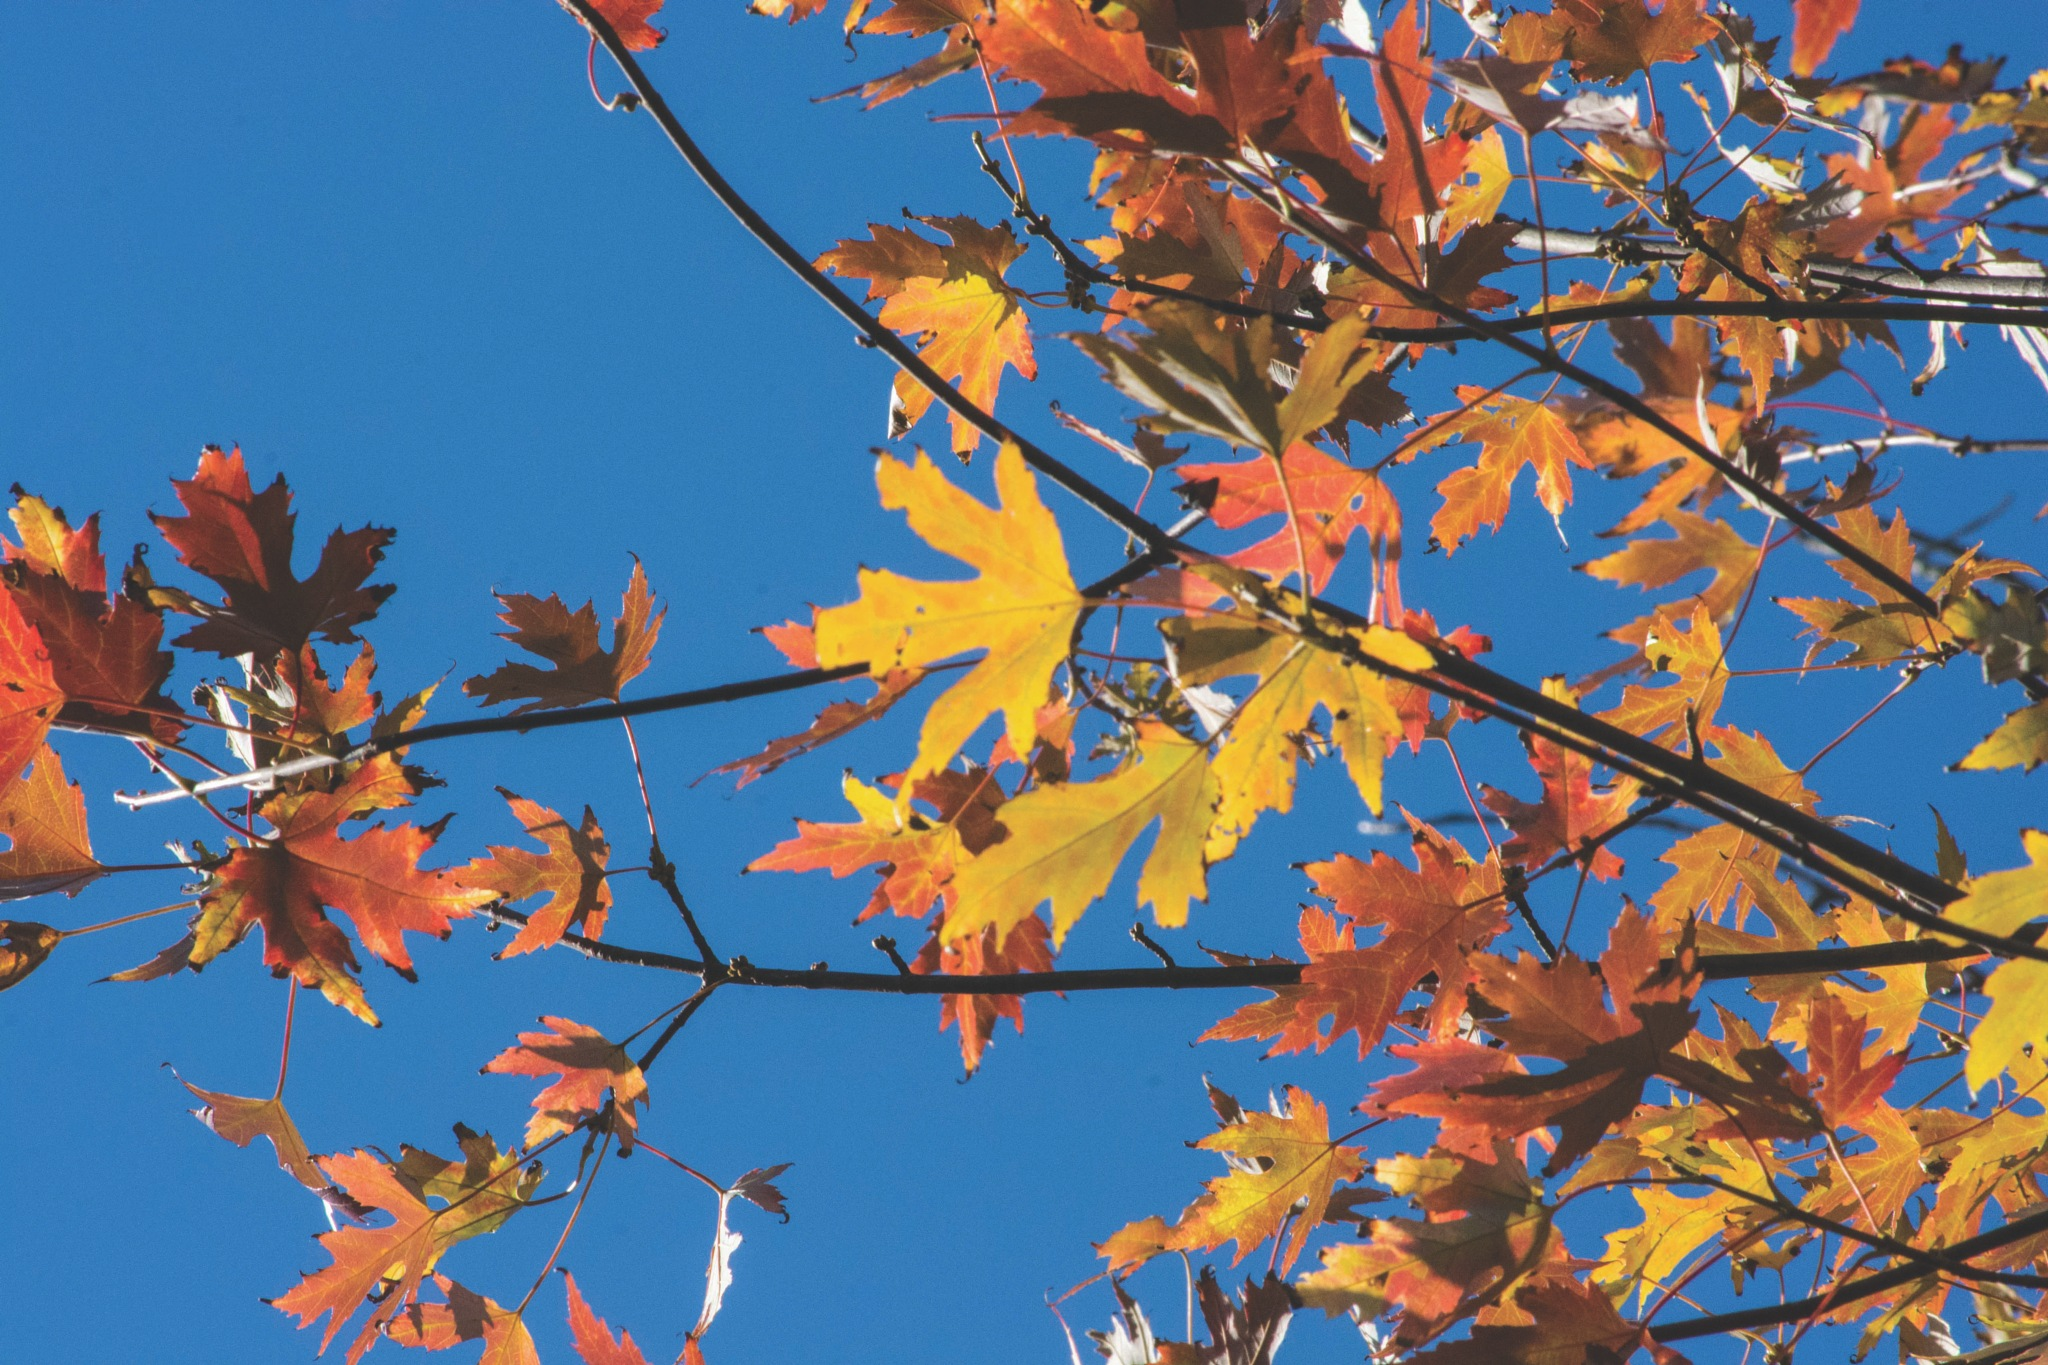 Fall leave's by Kevin M Hussey